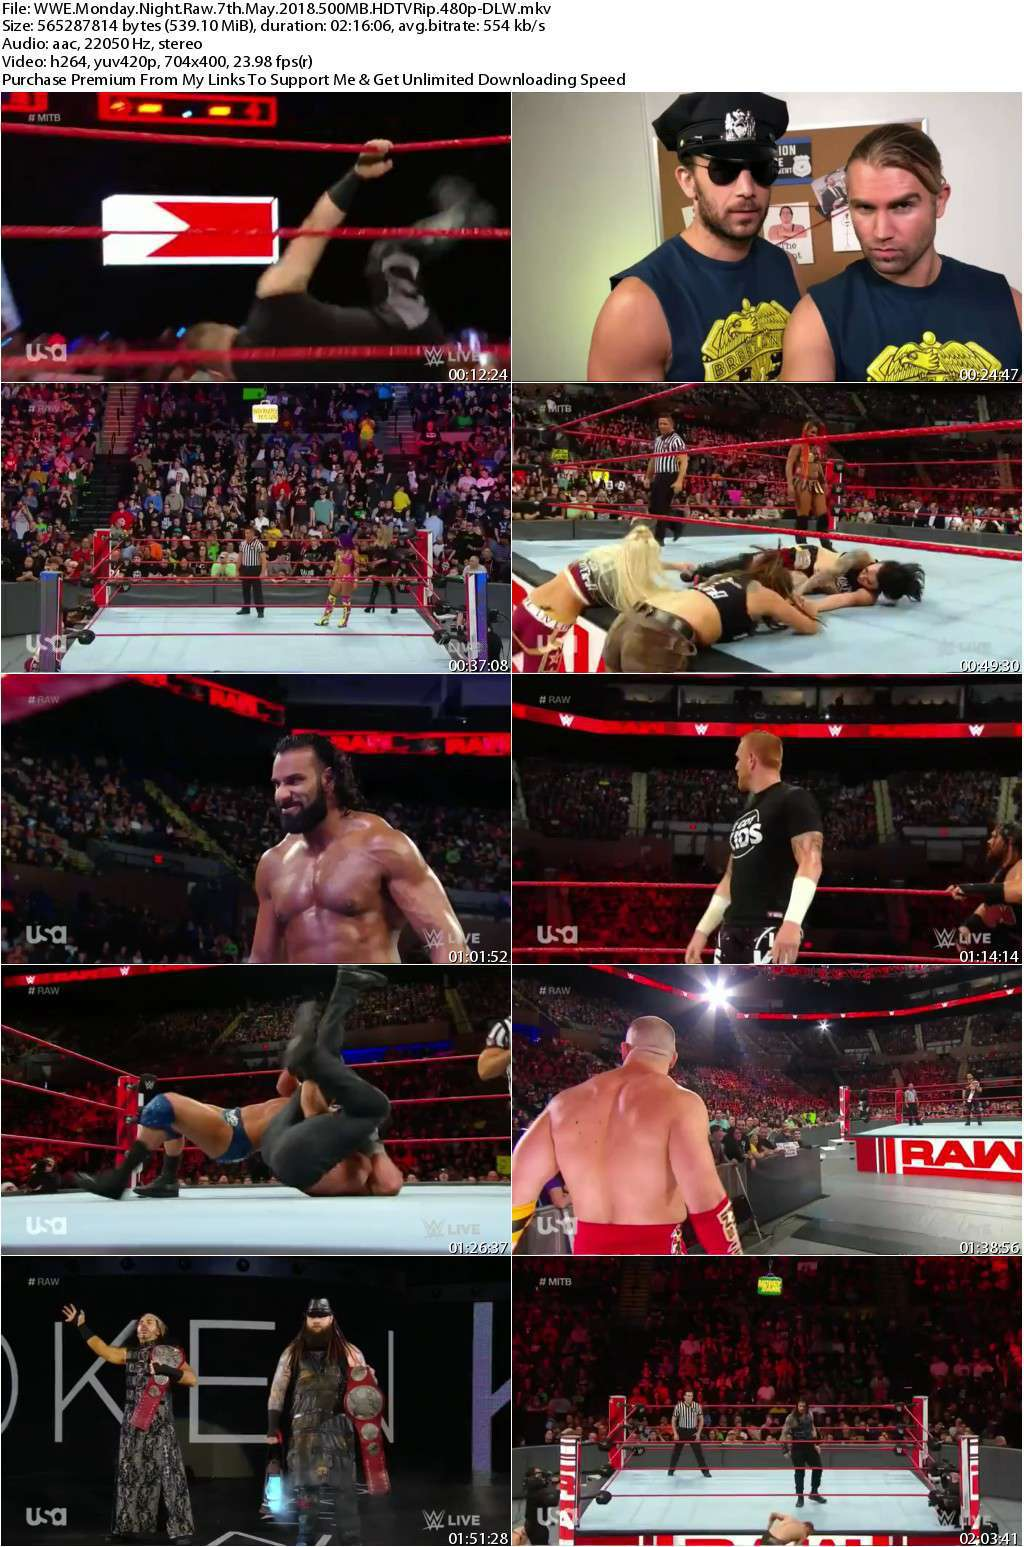 WWE Monday Night Raw 7th May 2018 500MB HDTVRip 480p-DLW